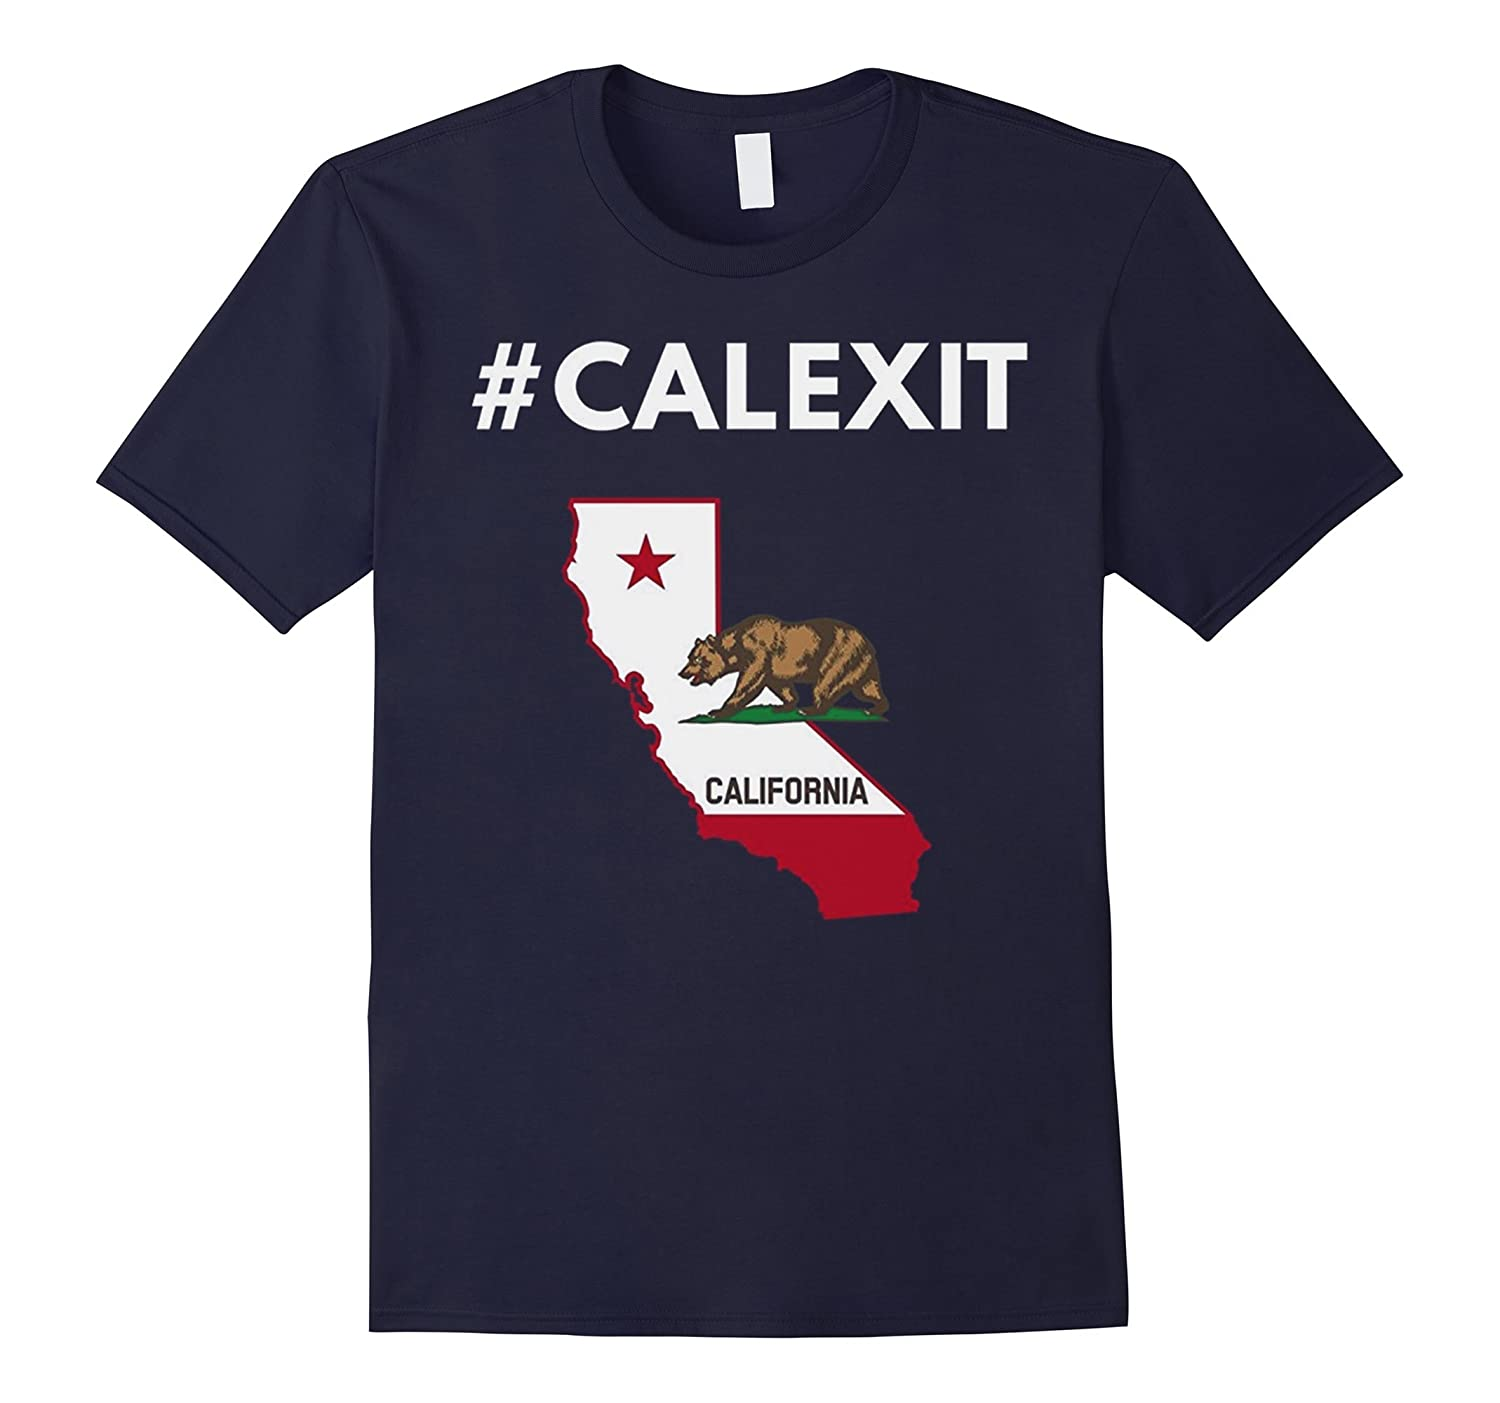 #CALEXIT Secession of California From the US T-Shirt-CL